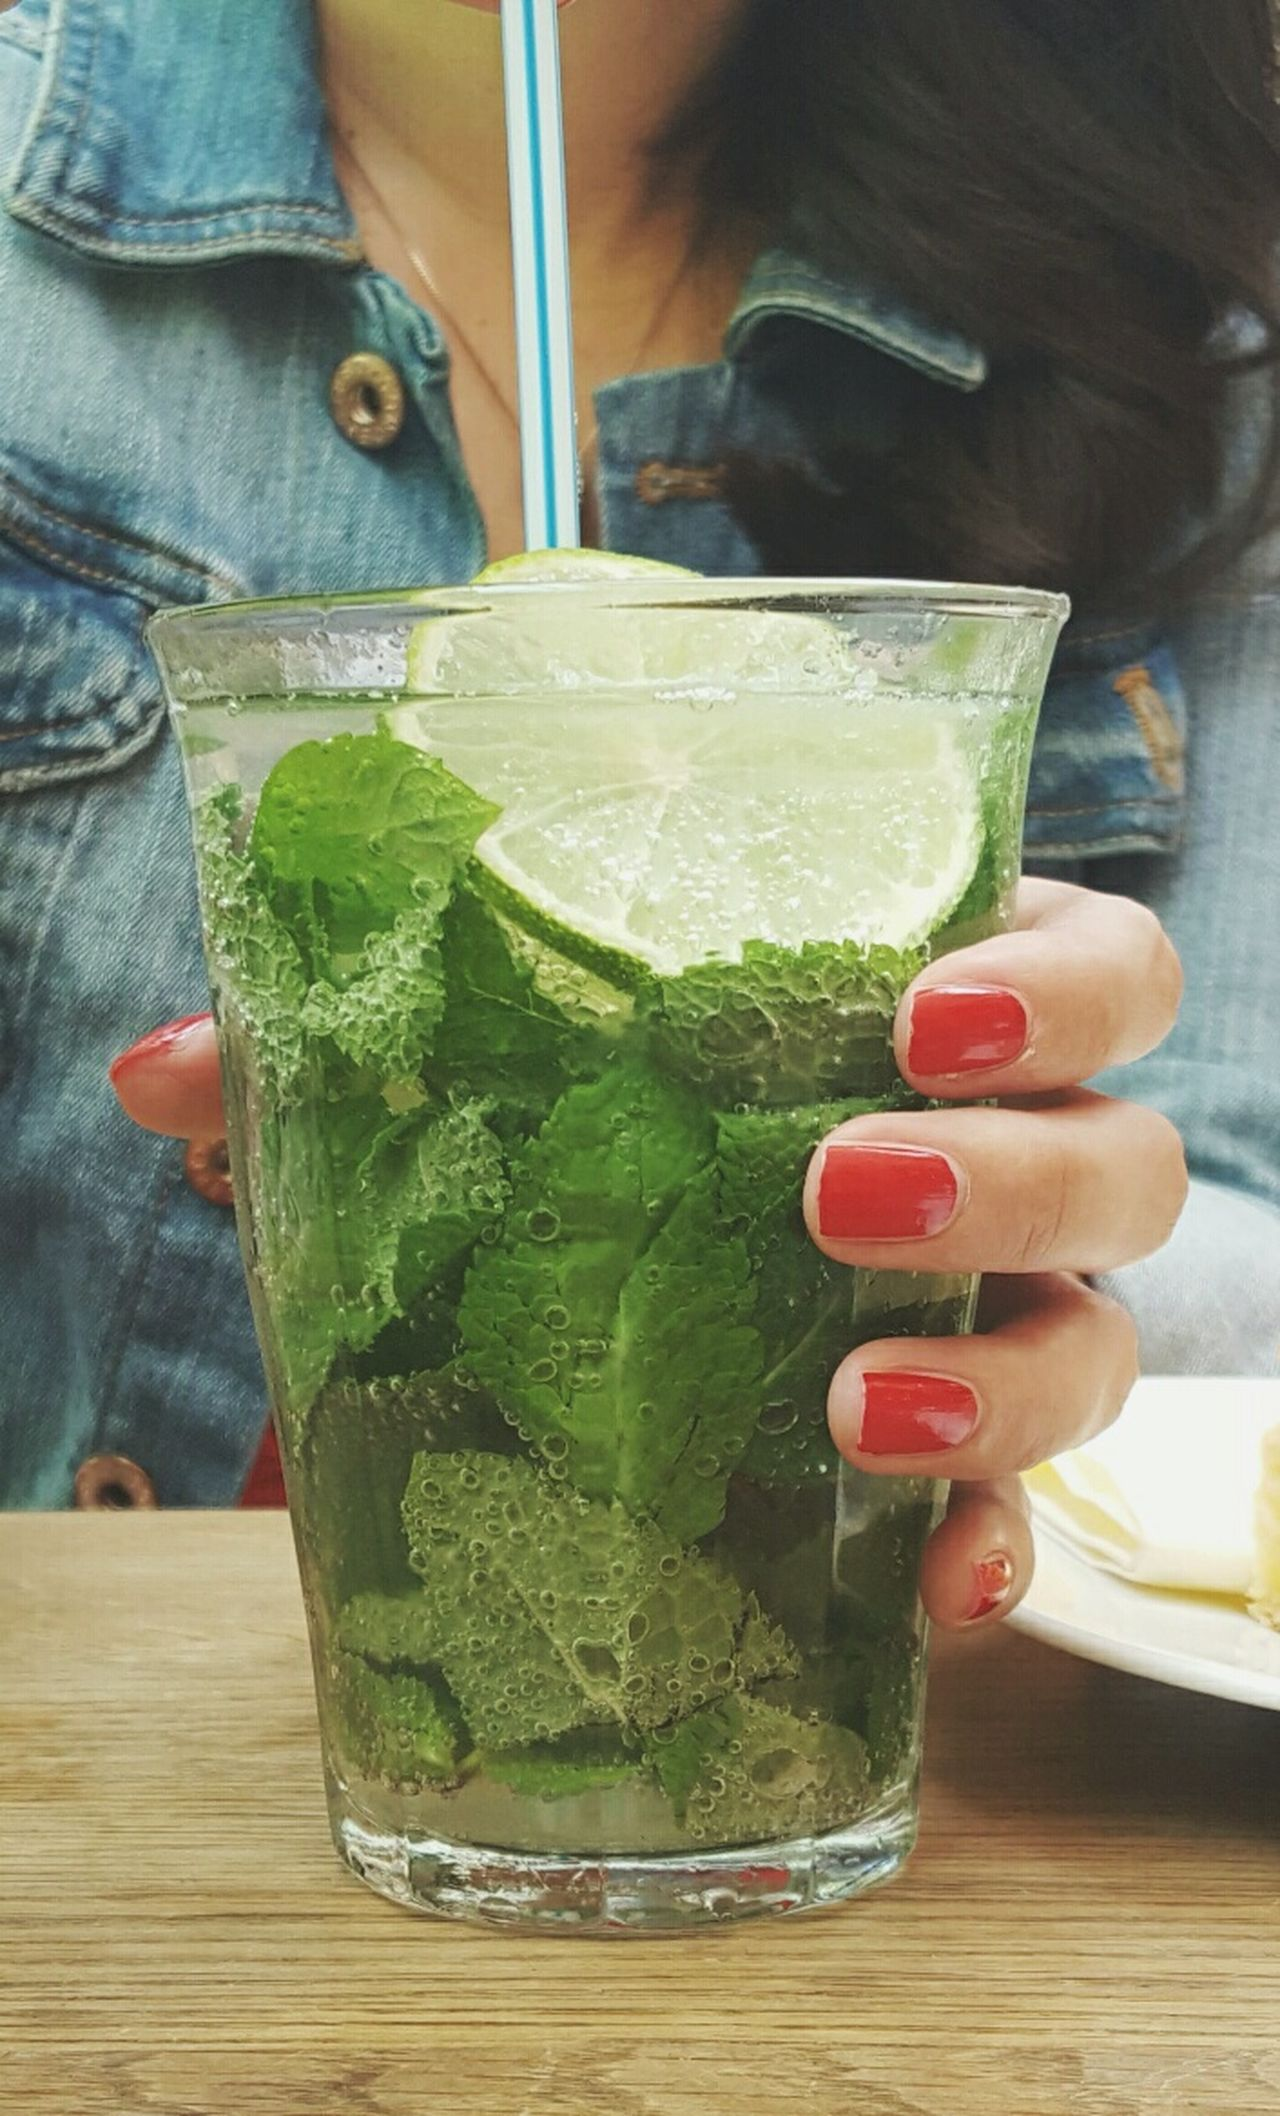 Summer vibes Cropped Female Hand Fingers Red Nails Summer Drink Tirsty Soda Bubbles Elderberry Syrup Fresh Mint Fresh Products On The Table Lemonade Lemon Slice Healthy Lifestyle Healthy Food Drinking Straw Glass Green Lemon Drink Showcase June The Essence Of Summer